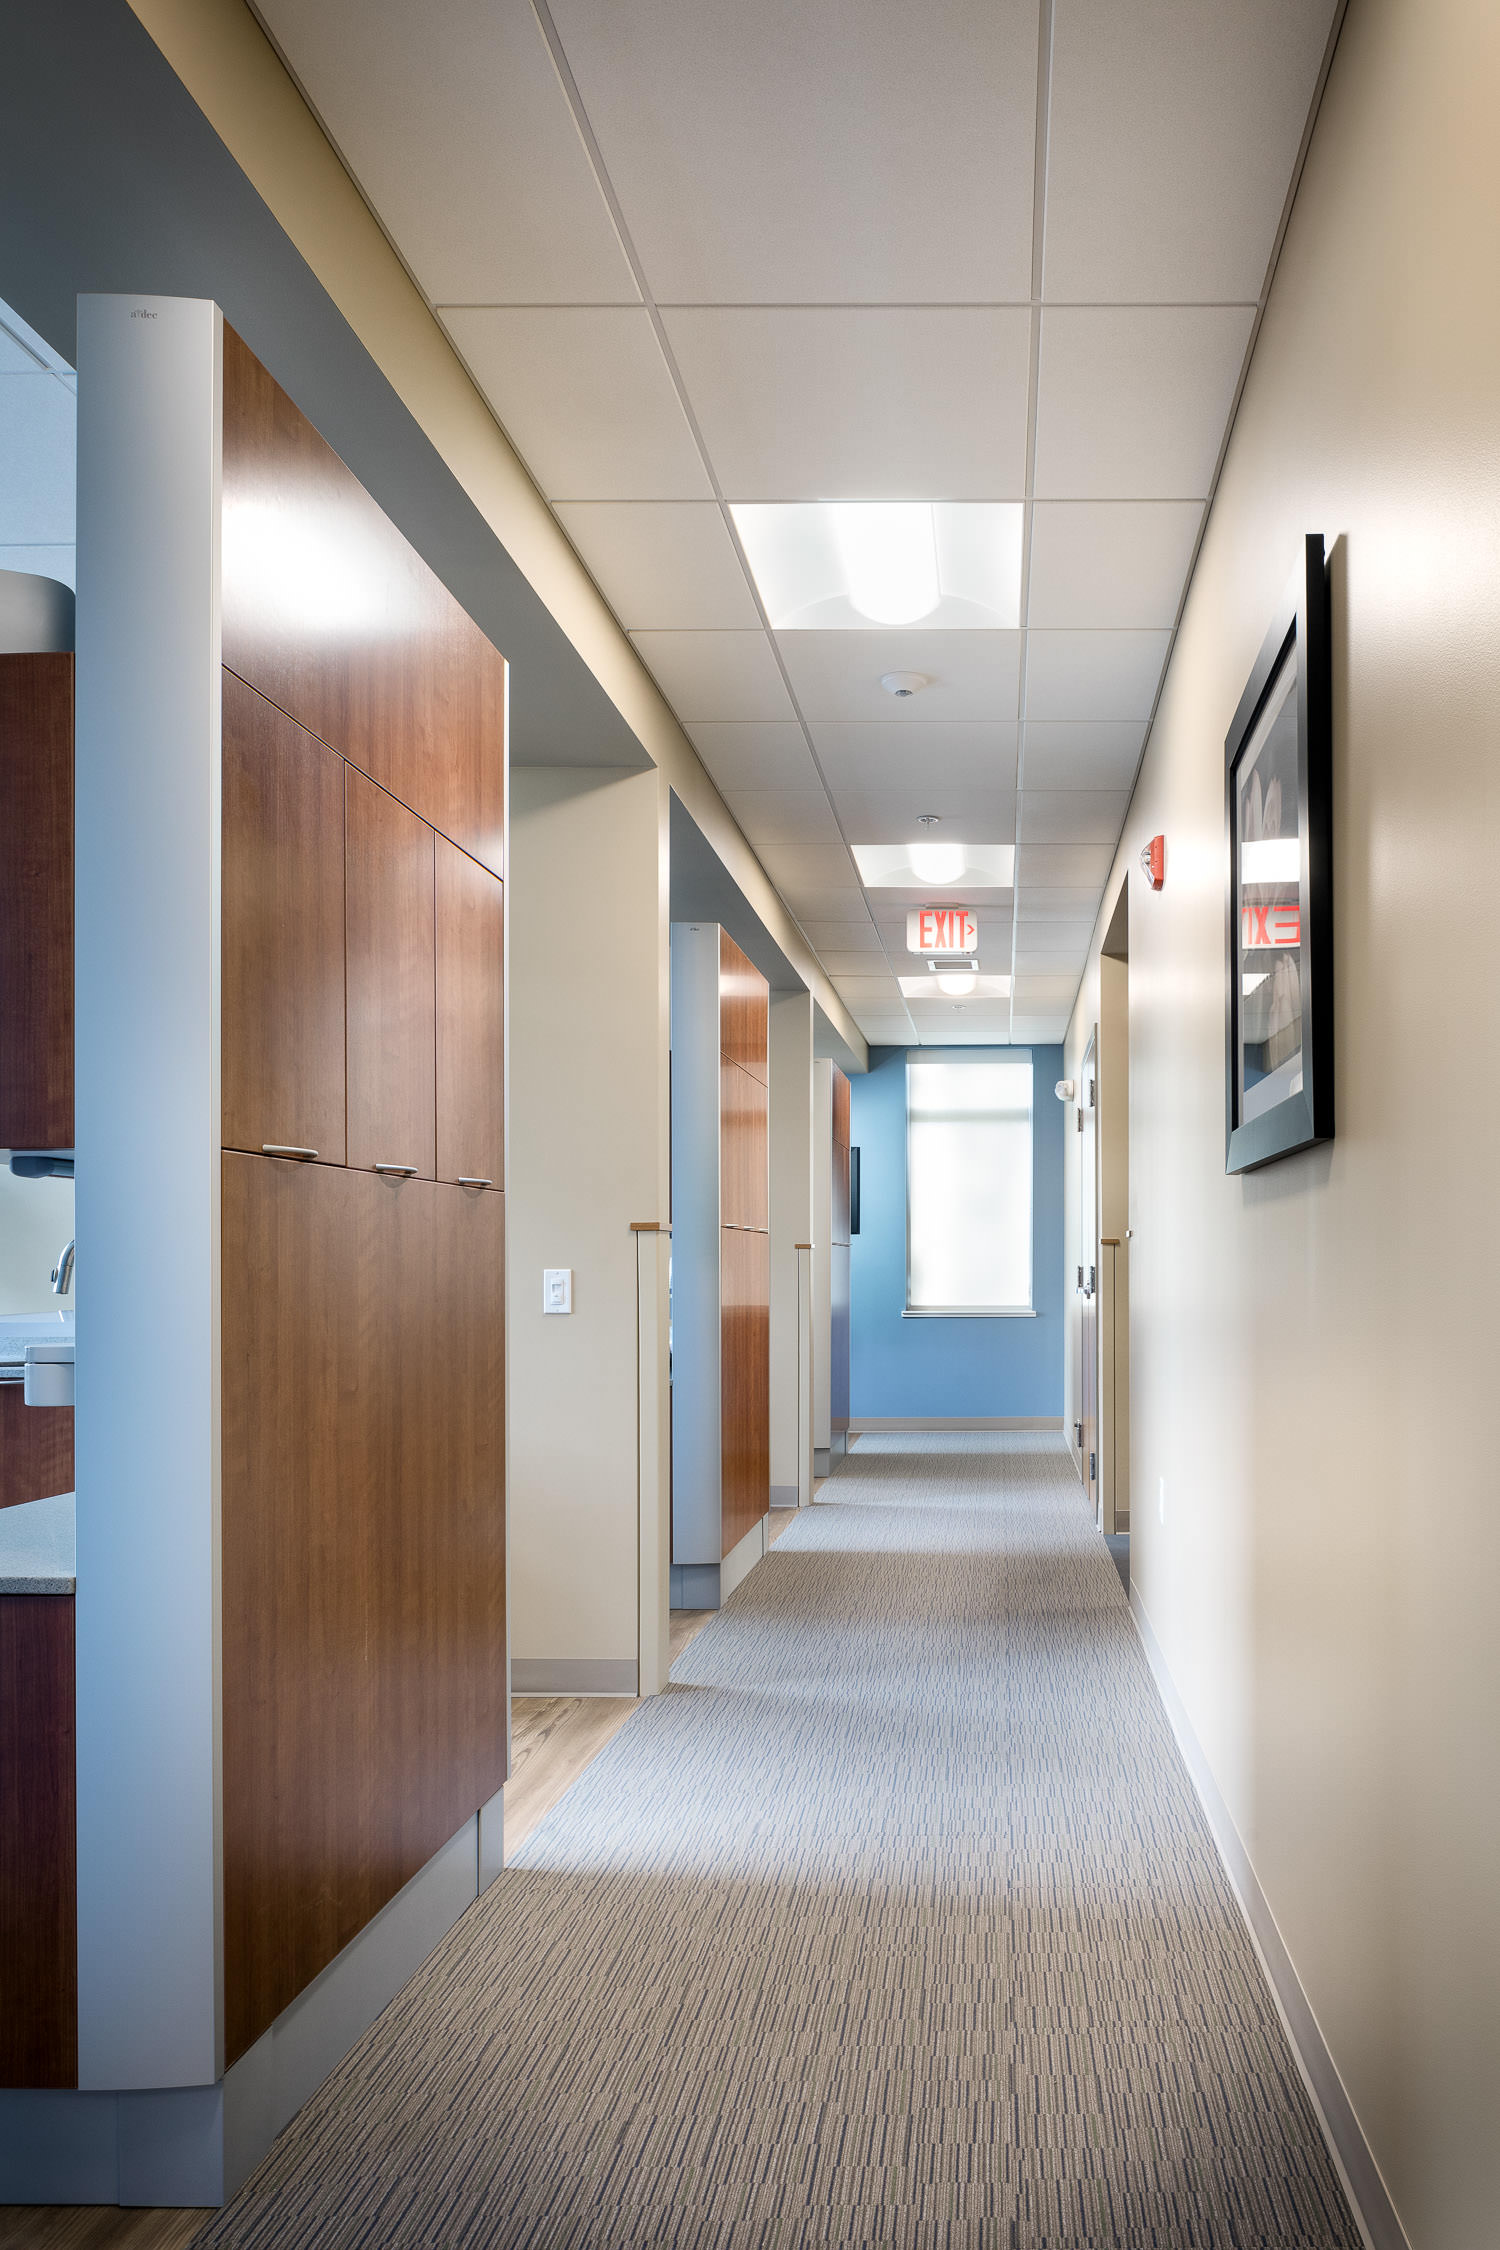 Photo of a hallway with custom cabinetry in the new Timberlane Dental Office in Essex Vermont with interior design by BSD Interior Design and construction by Neagley & Chase photographed by Studio SB.